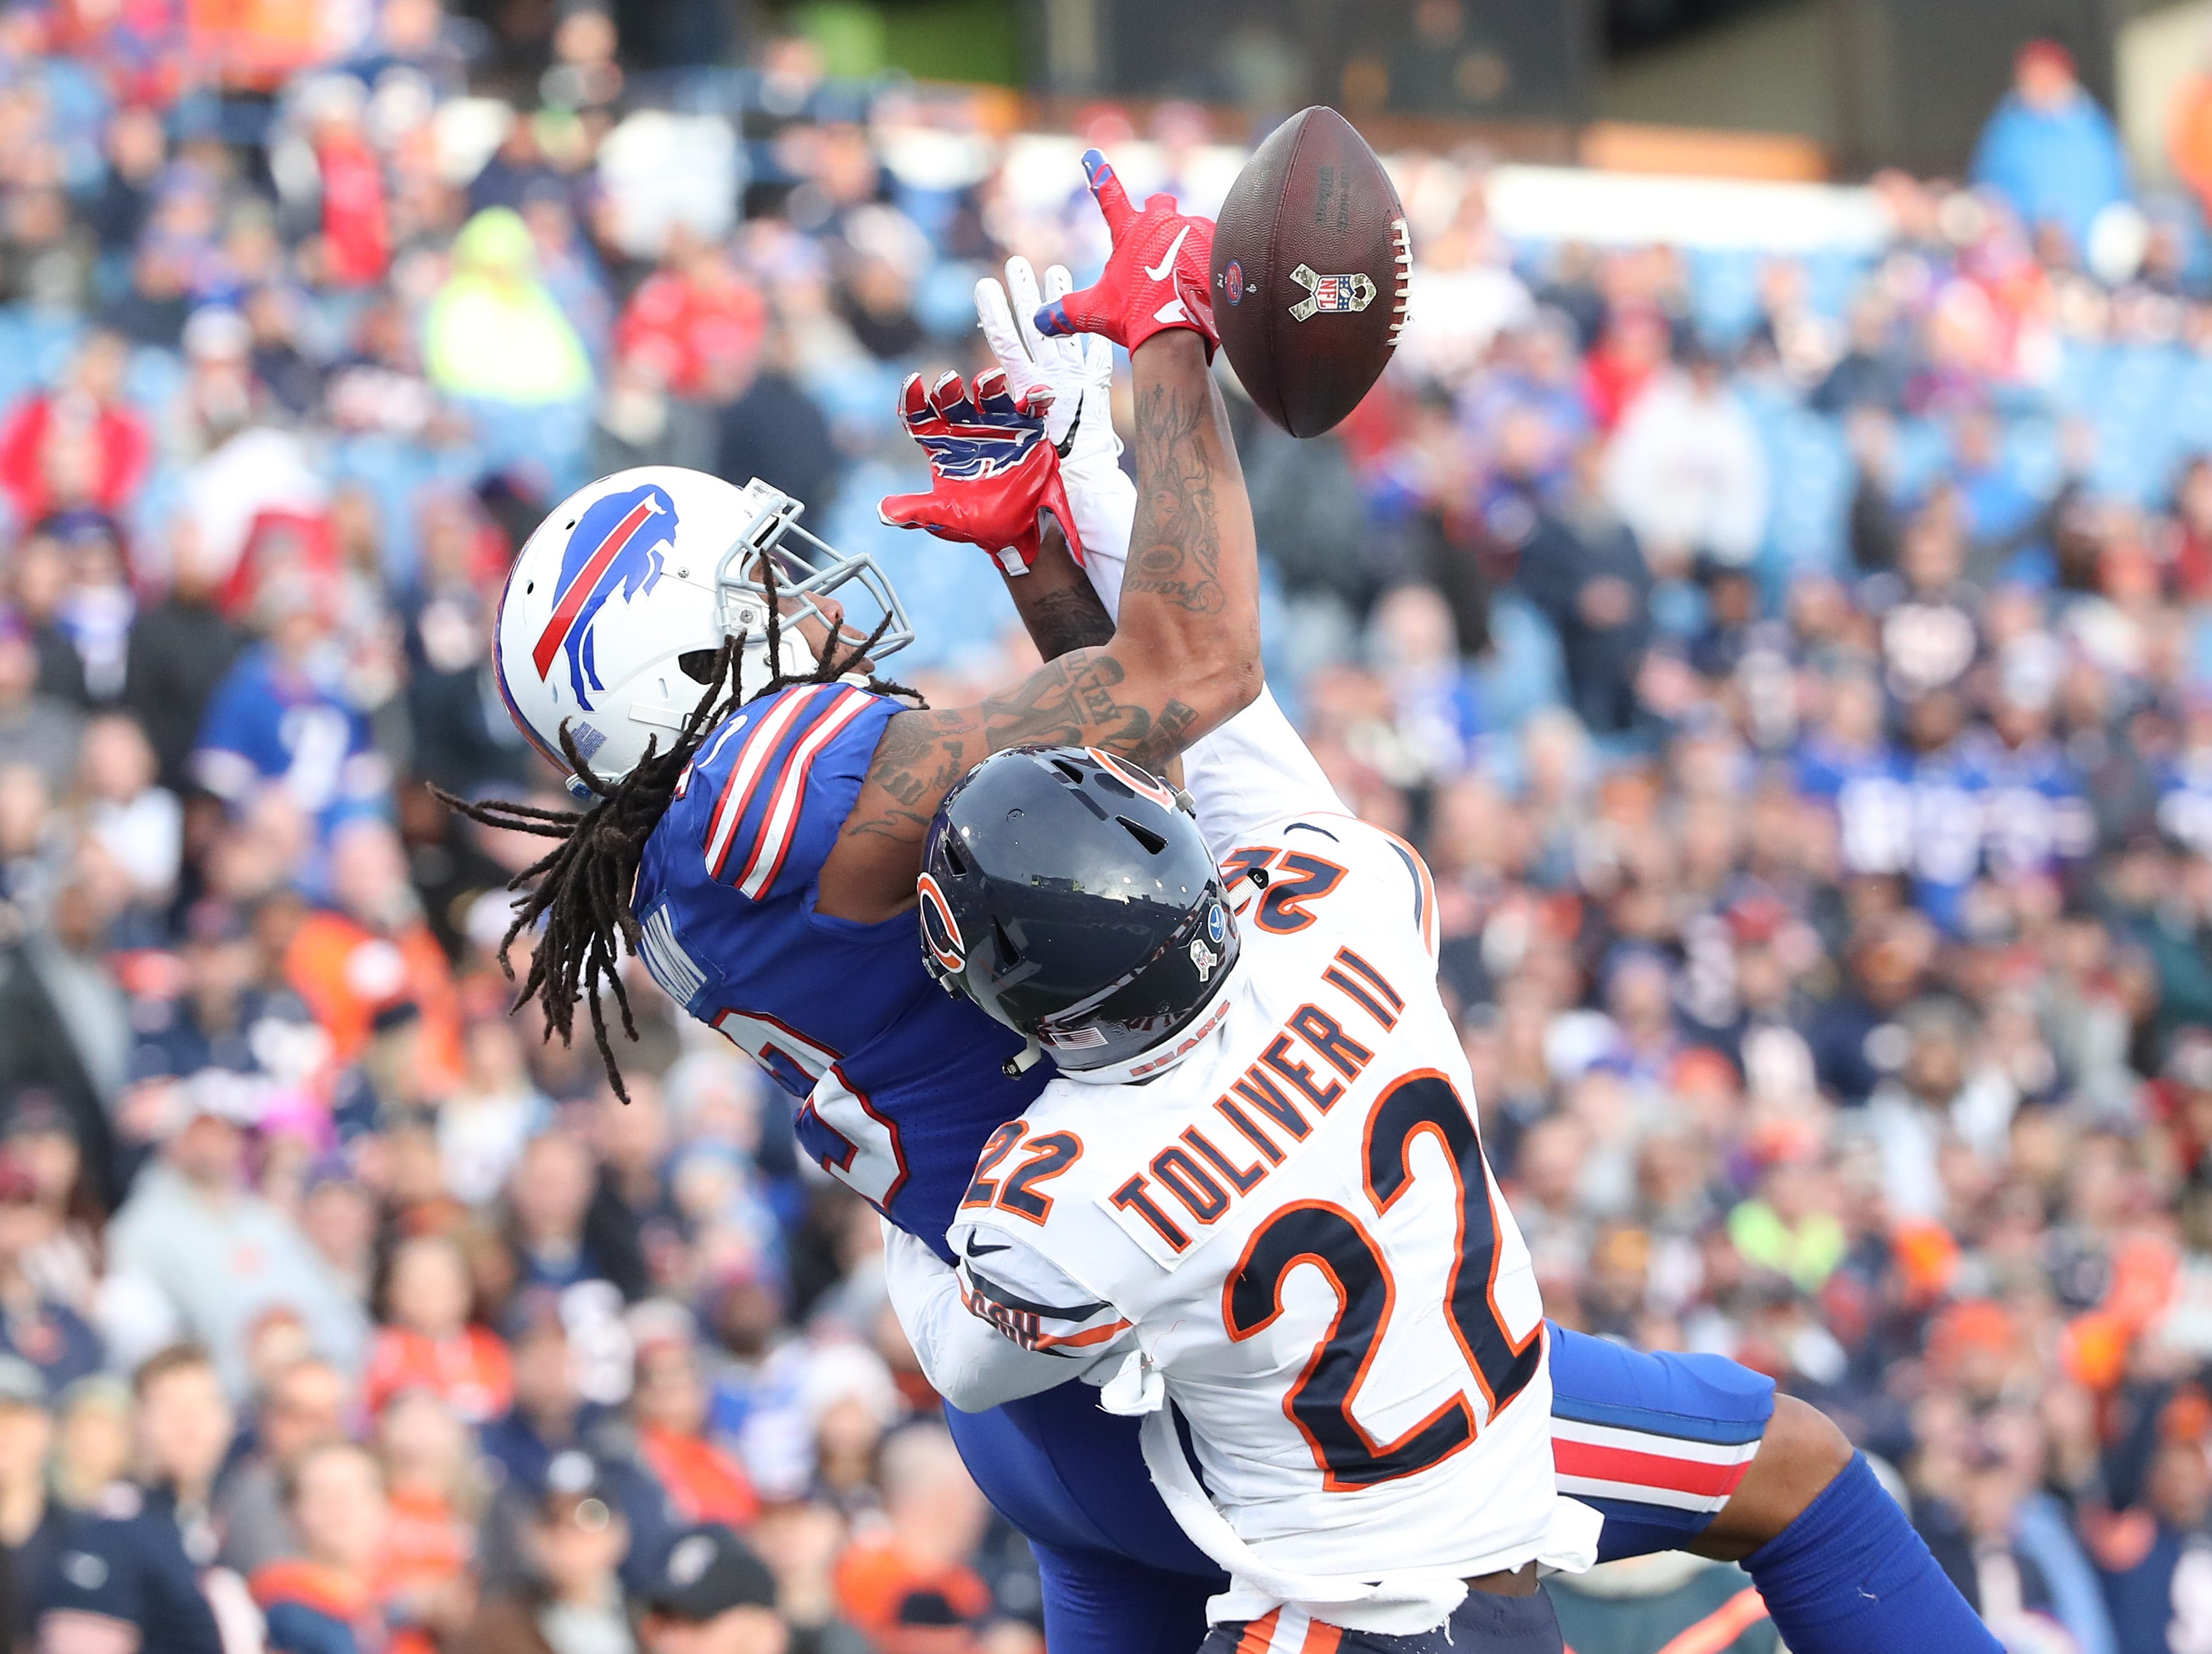 Is Kelvin Benjamin the worst receiver in the NFL? This stat says yes.